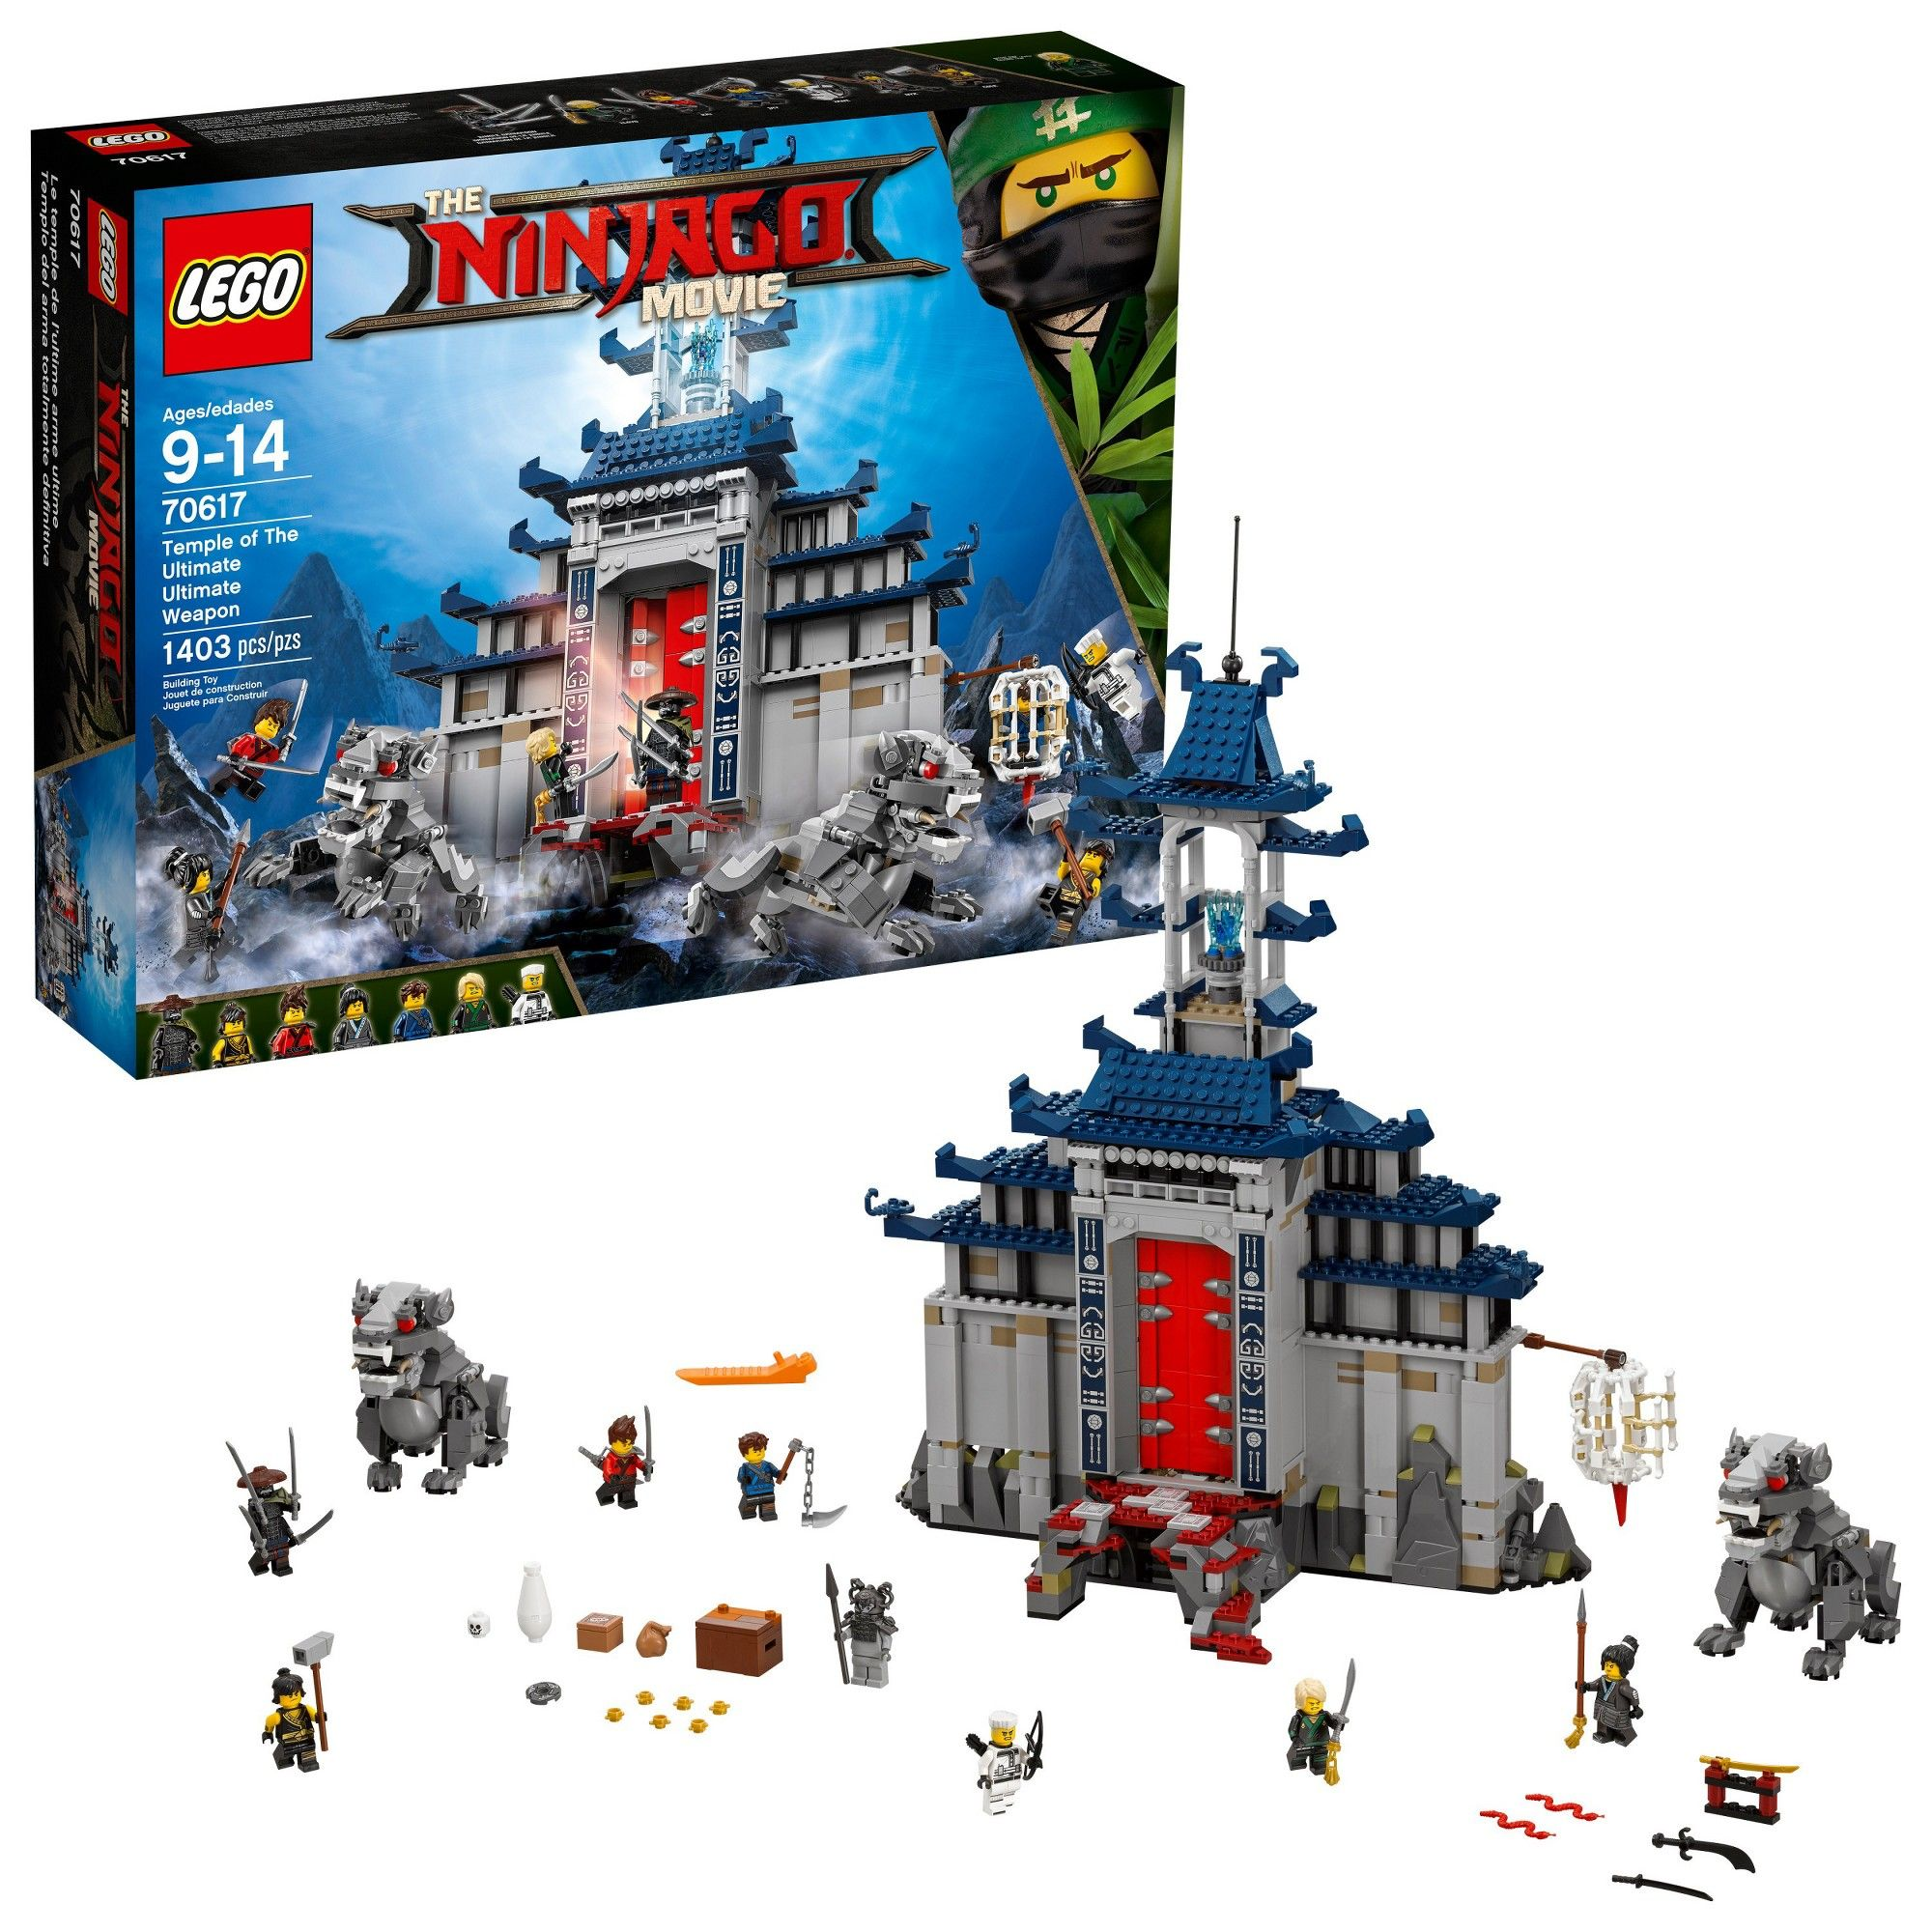 The Ultimate Lego Ninjago Temple Weapon Of 70617Products nOkwN80PXZ